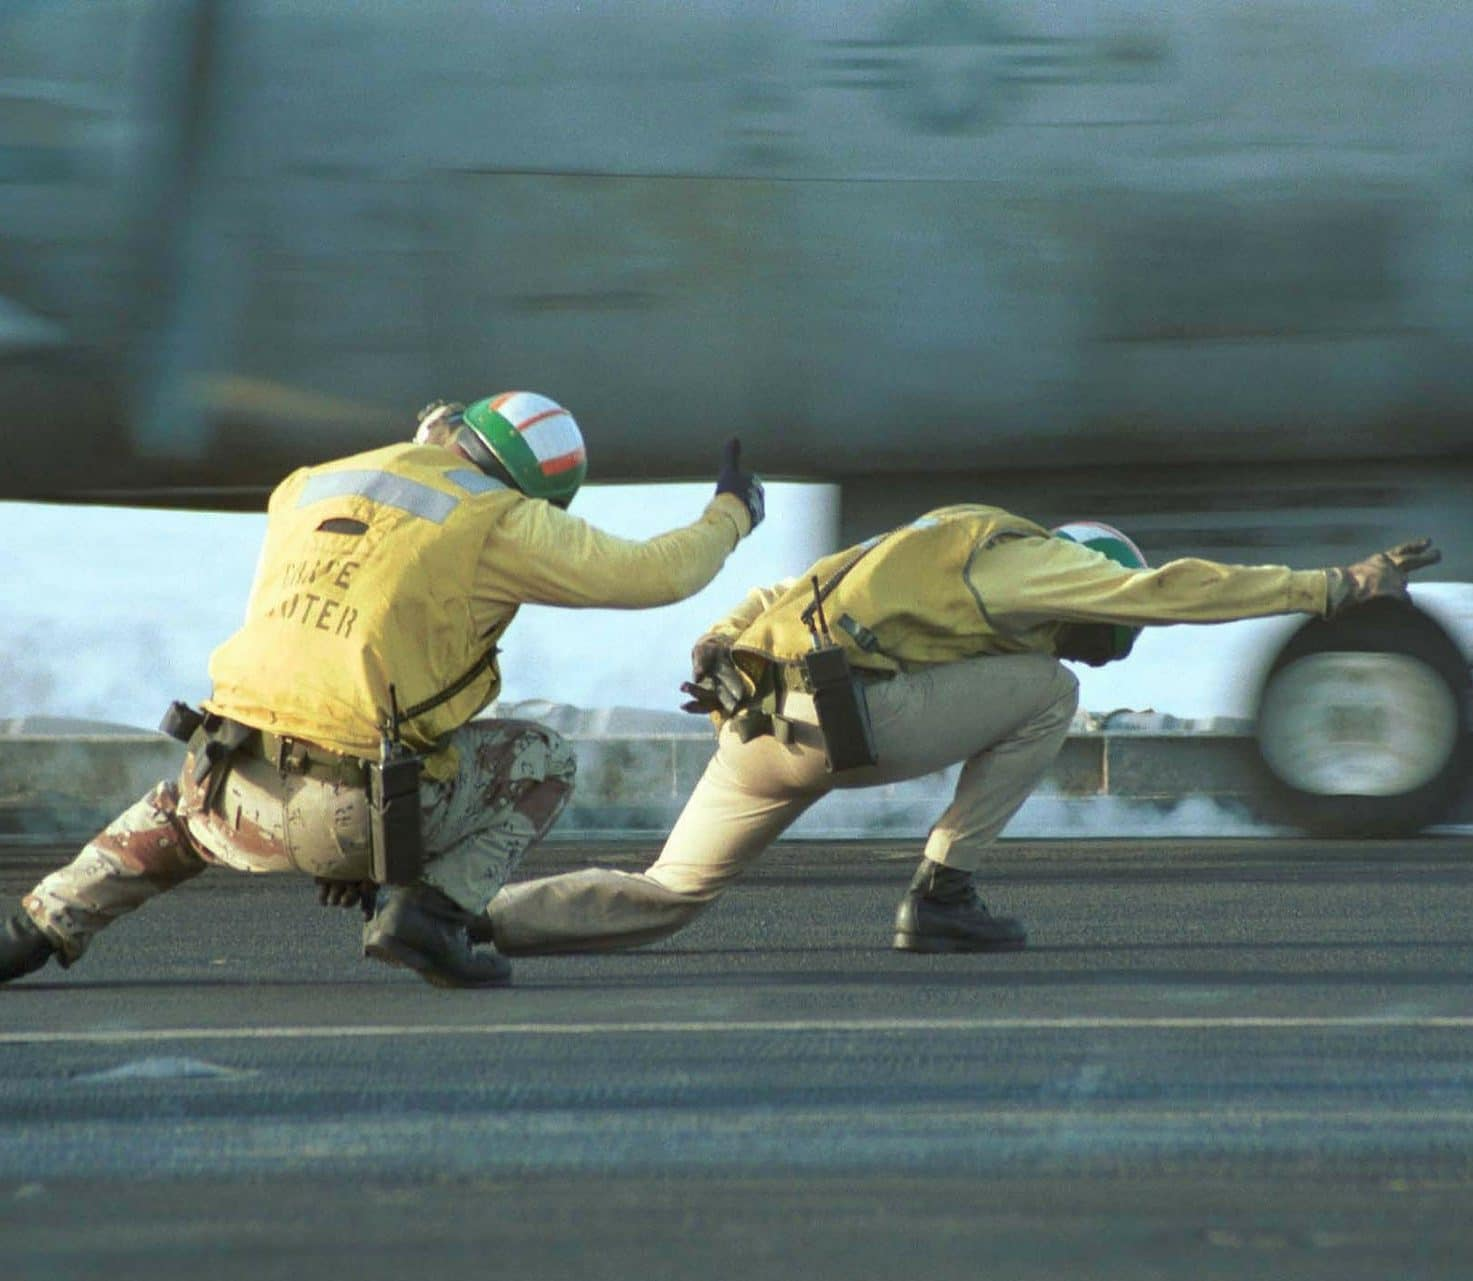 Two people working on an aircraft carrier